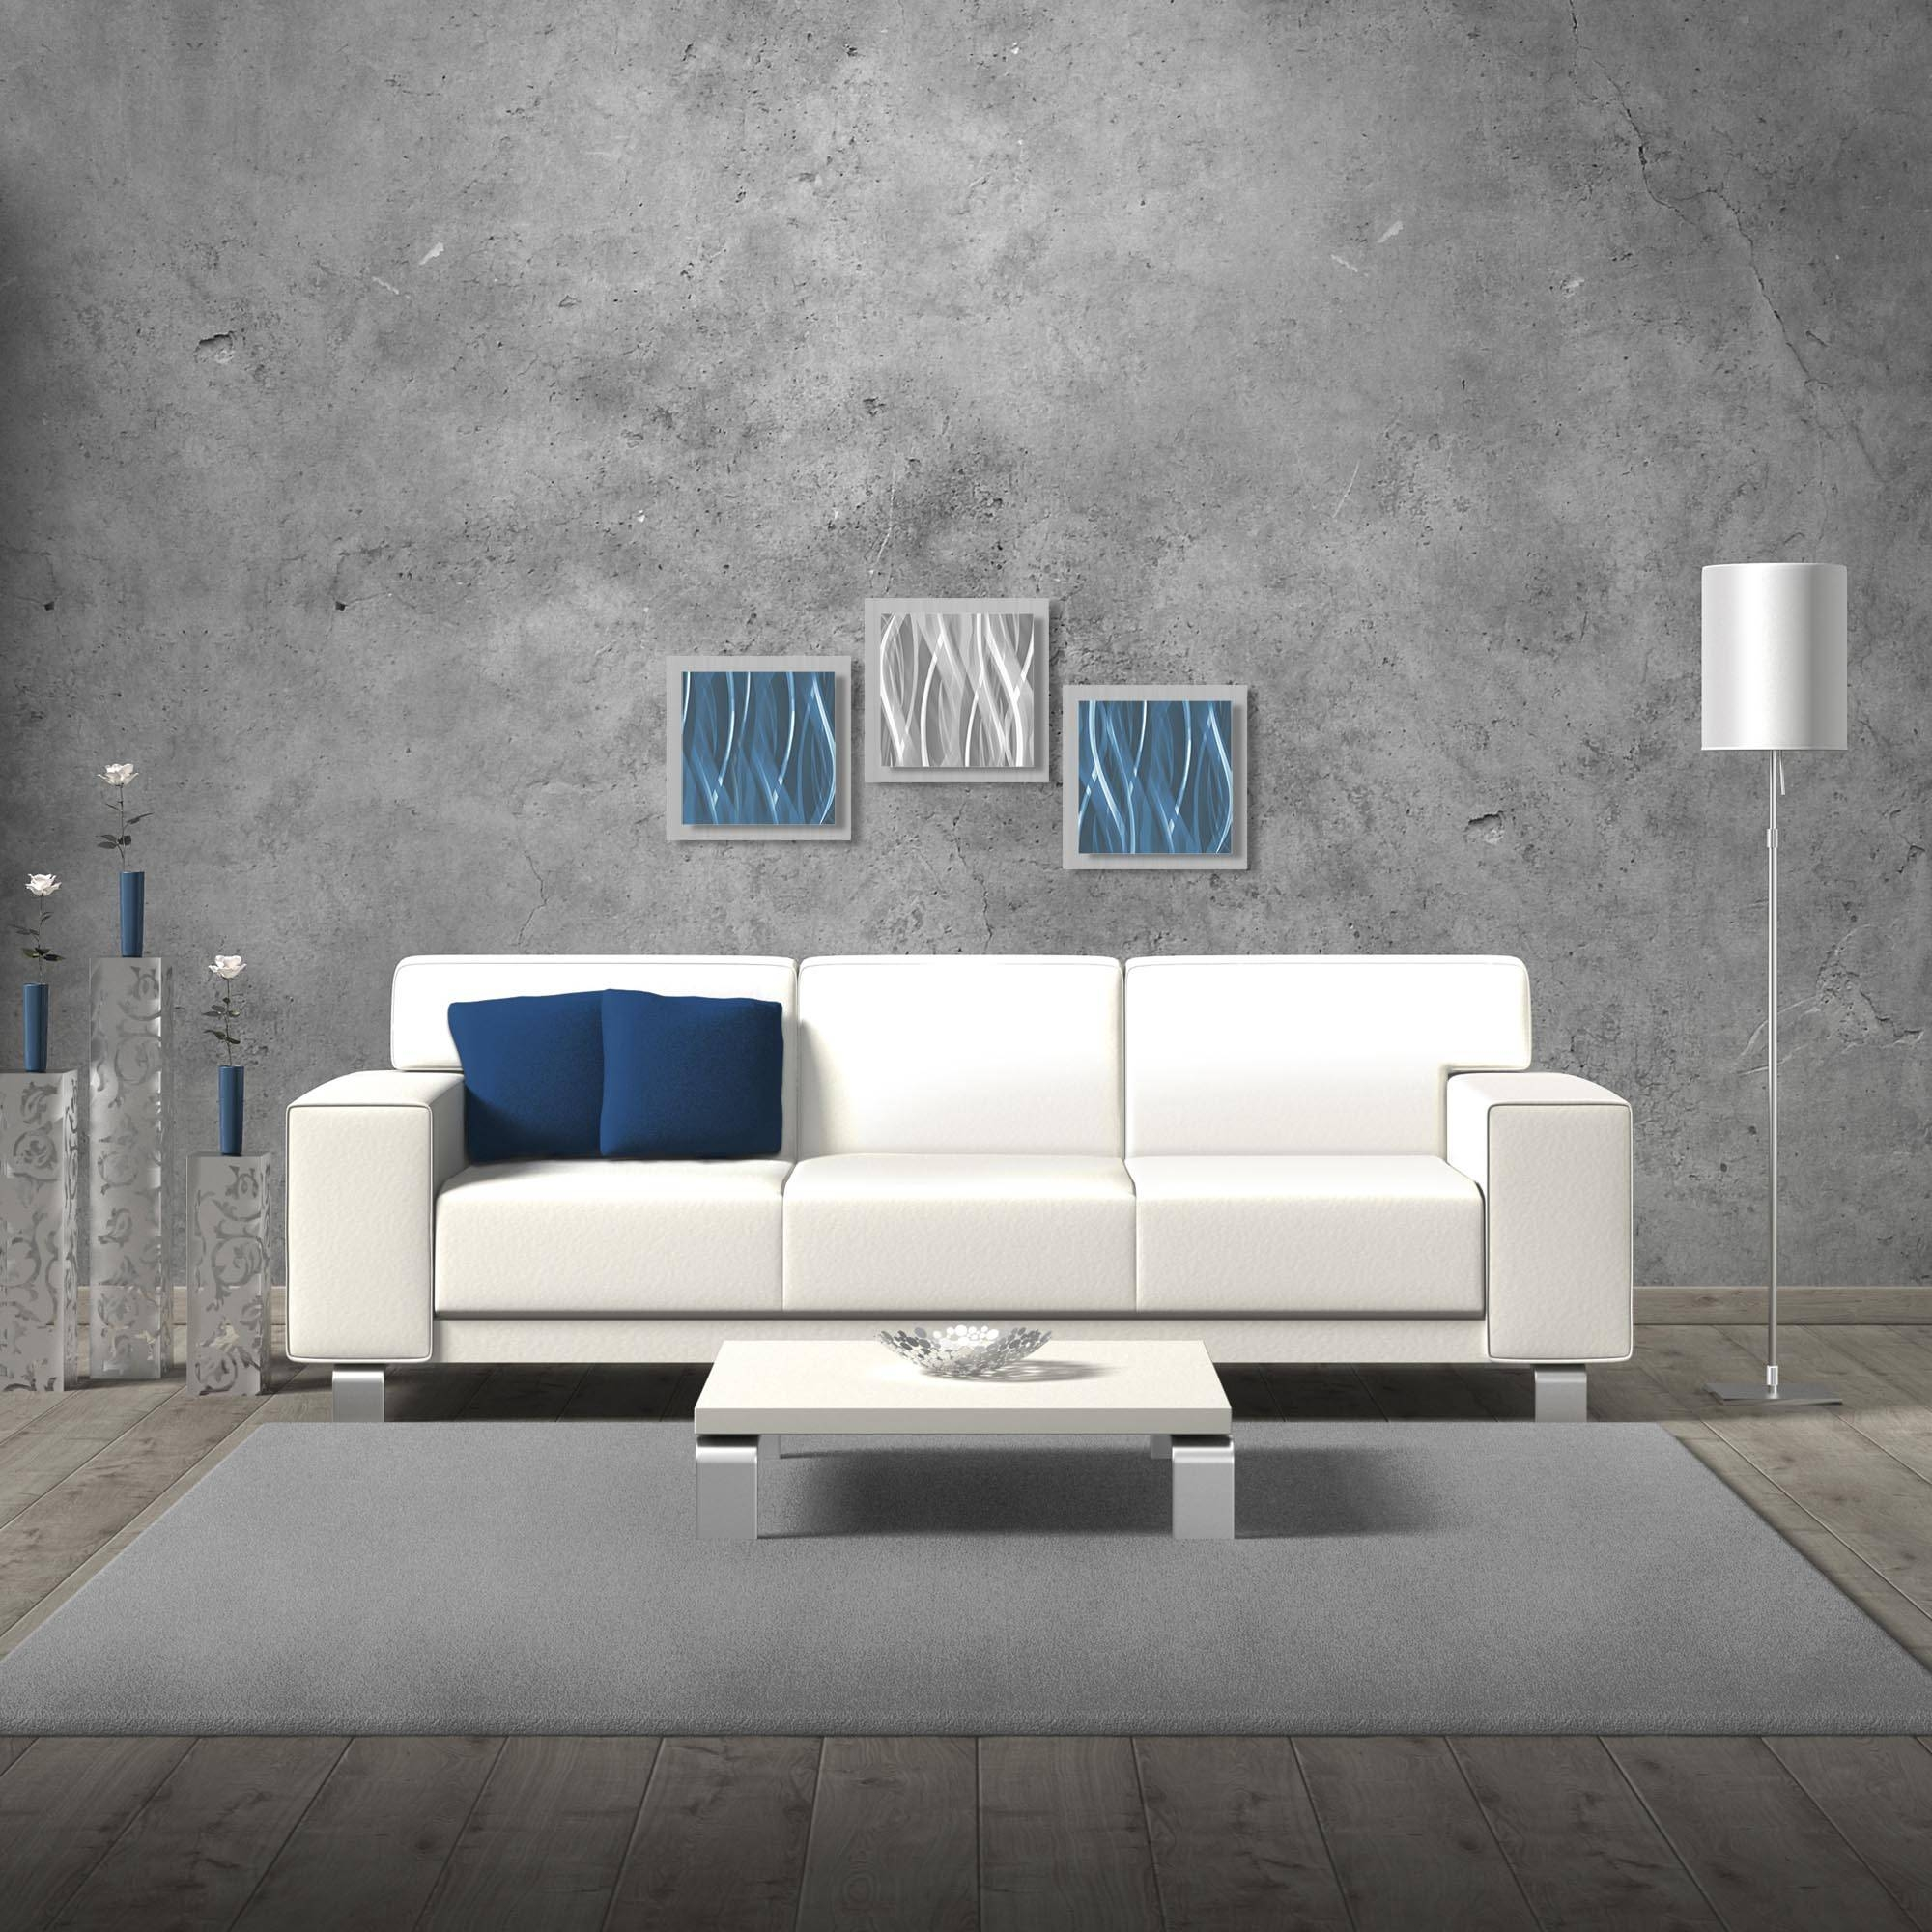 Modern Metal Wall Art Masculine Contemporary Décor Blue Silver For Best And Newest Blue And Silver Wall Art (View 18 of 20)